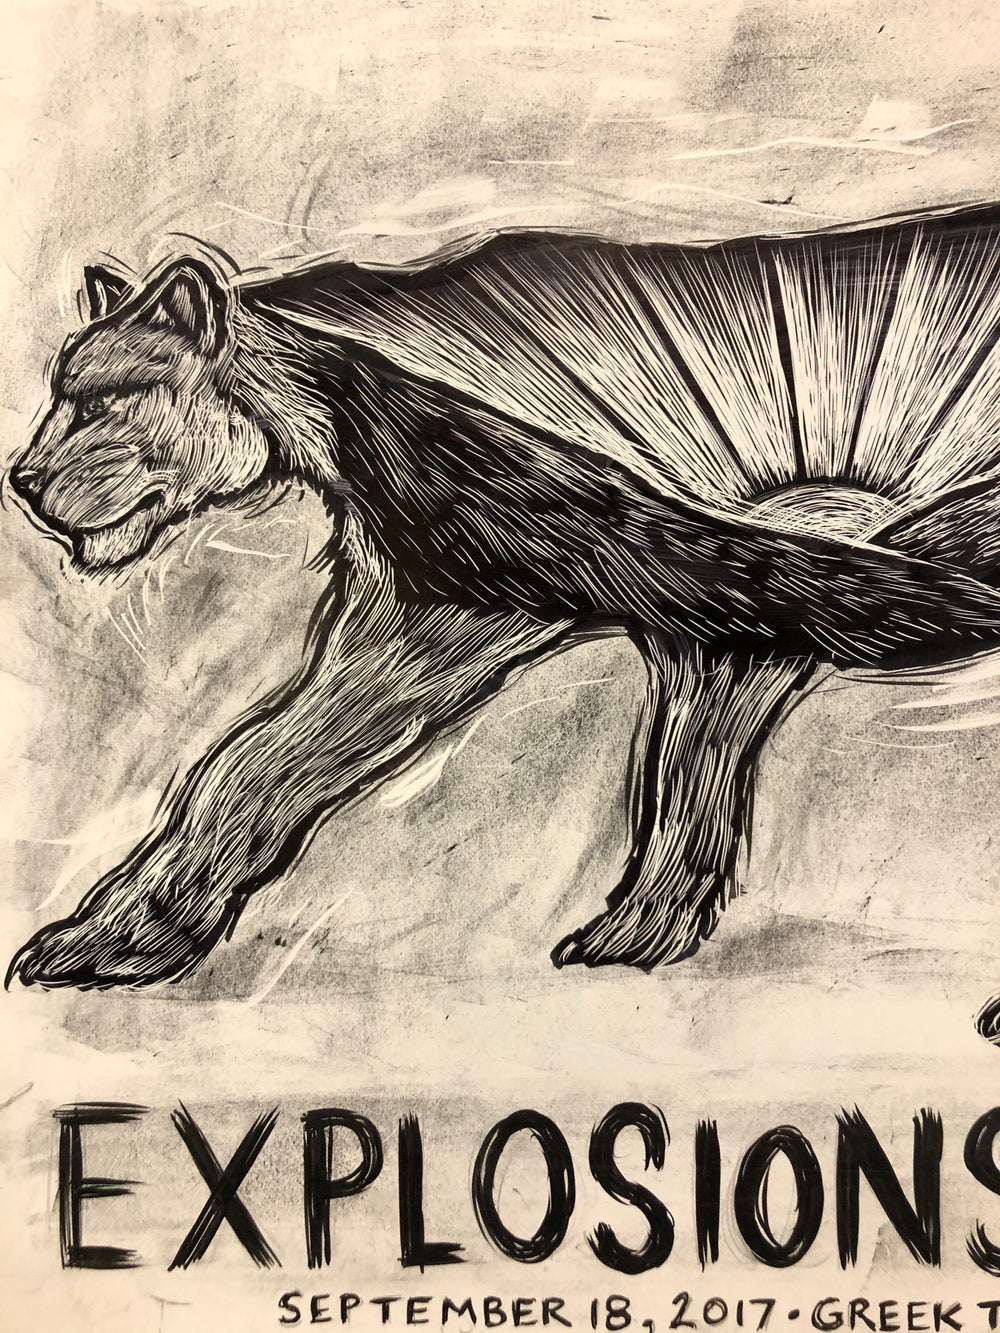 Explosions in The sky original drawing